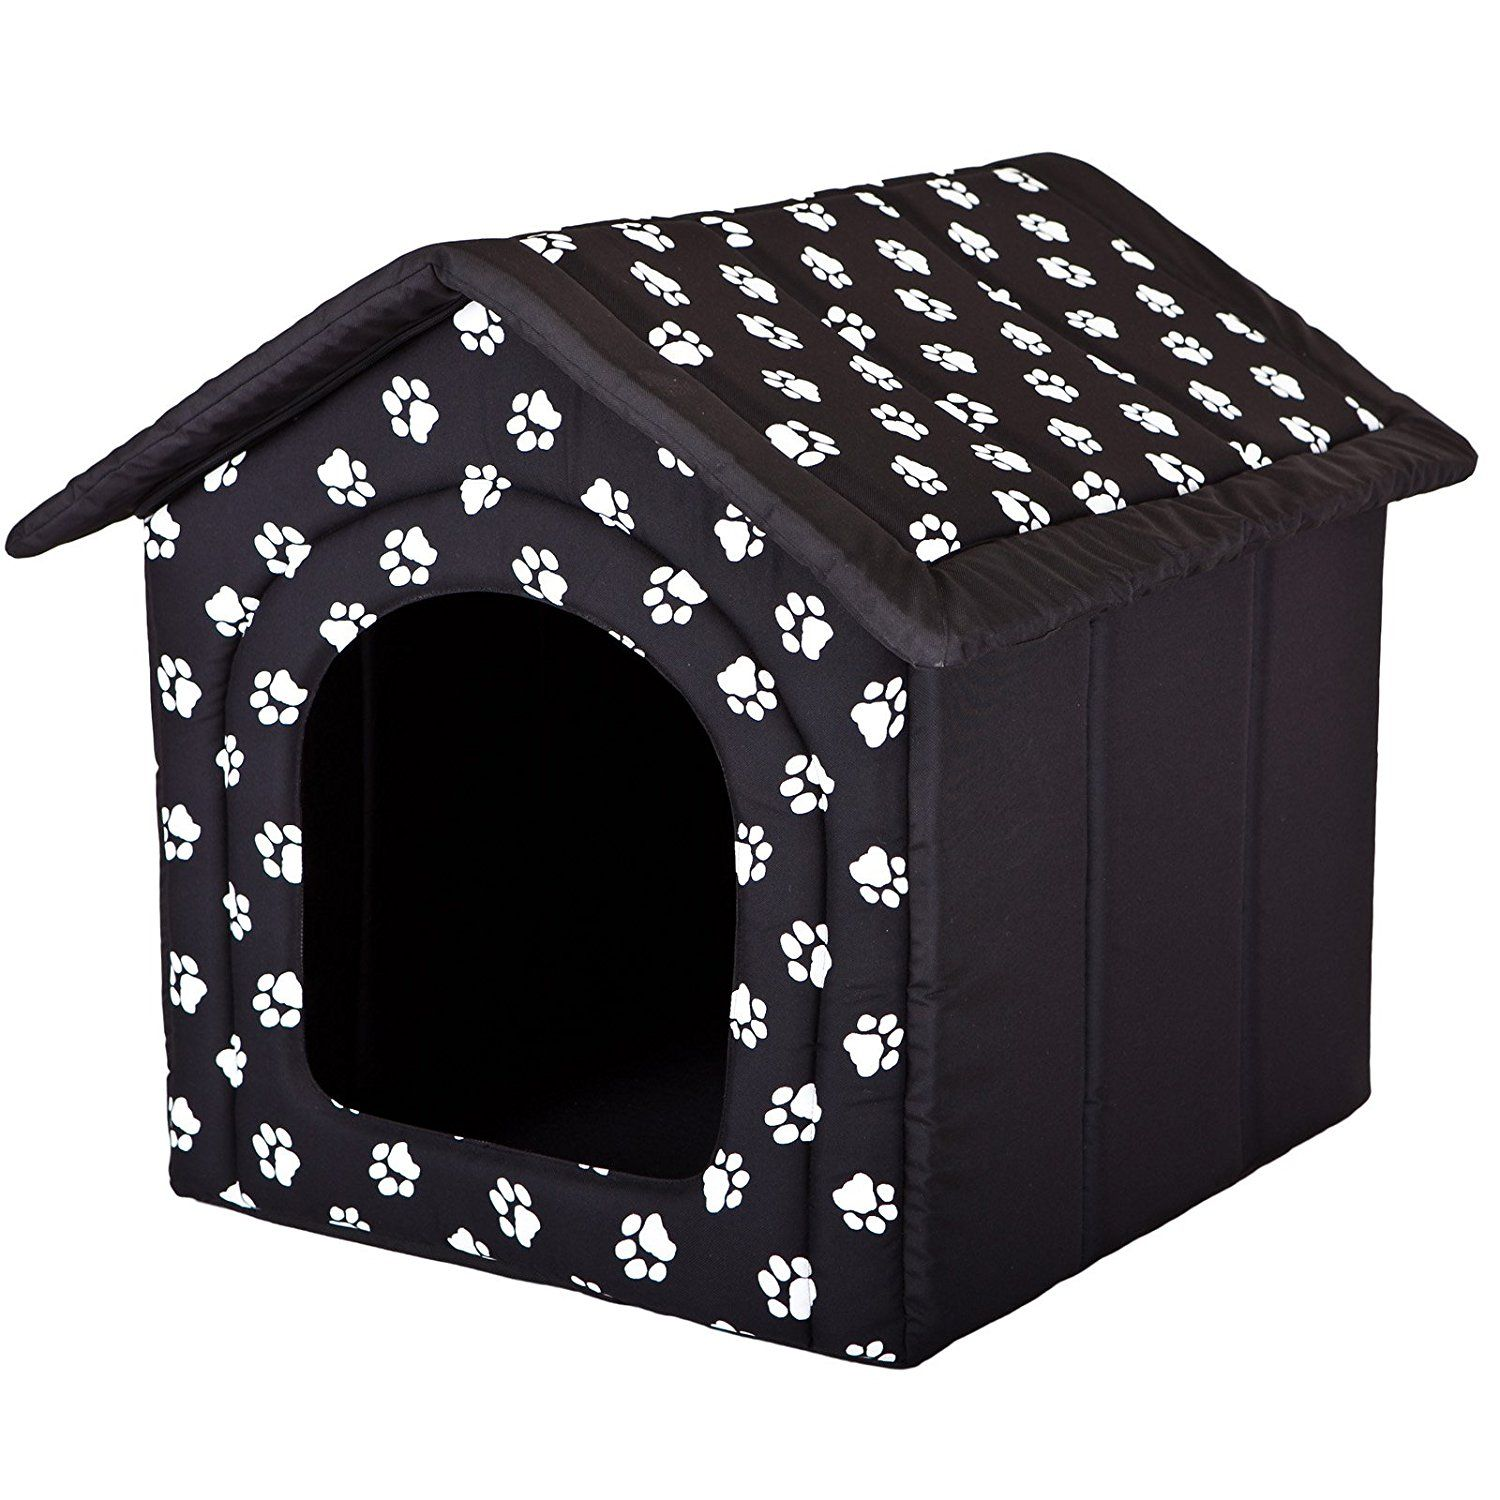 Hobbydog Dog House, Size 3, Black with Paws >>> Read more